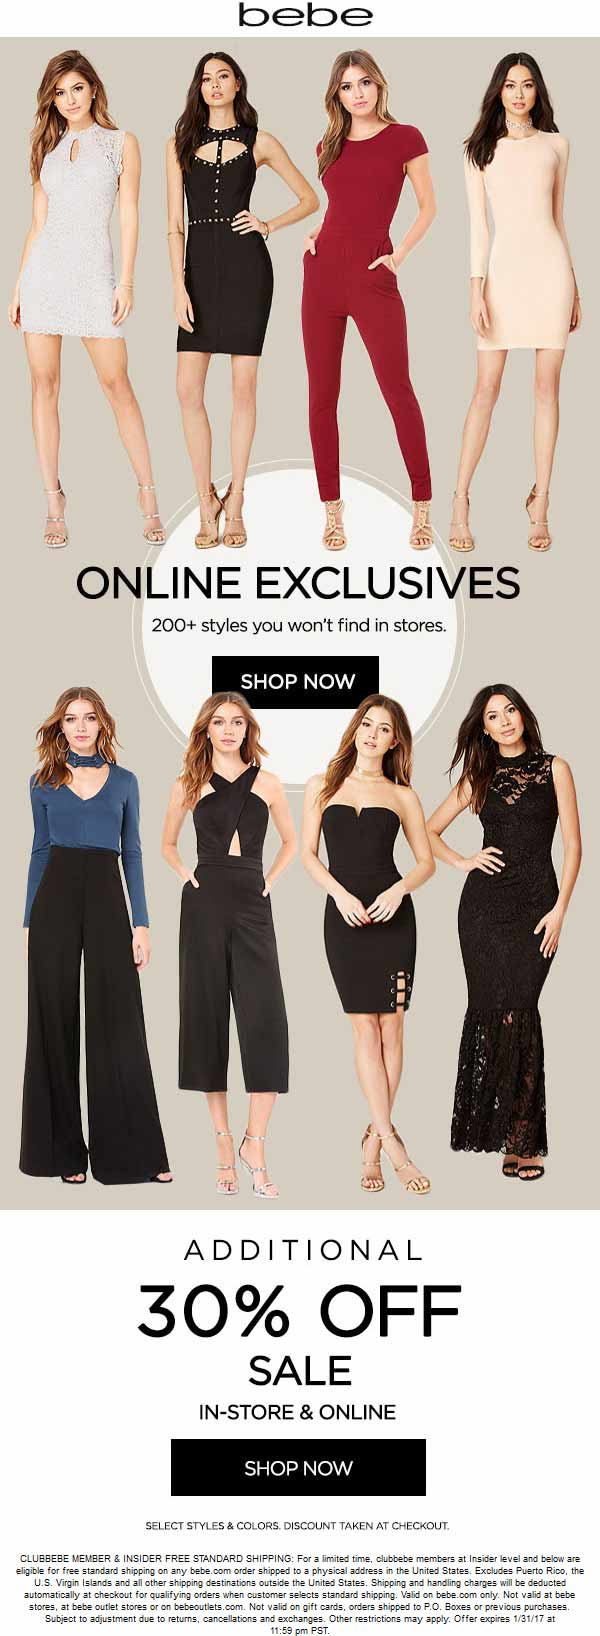 Bebe.com Promo Coupon Extra 30% off at bebe, ditto online